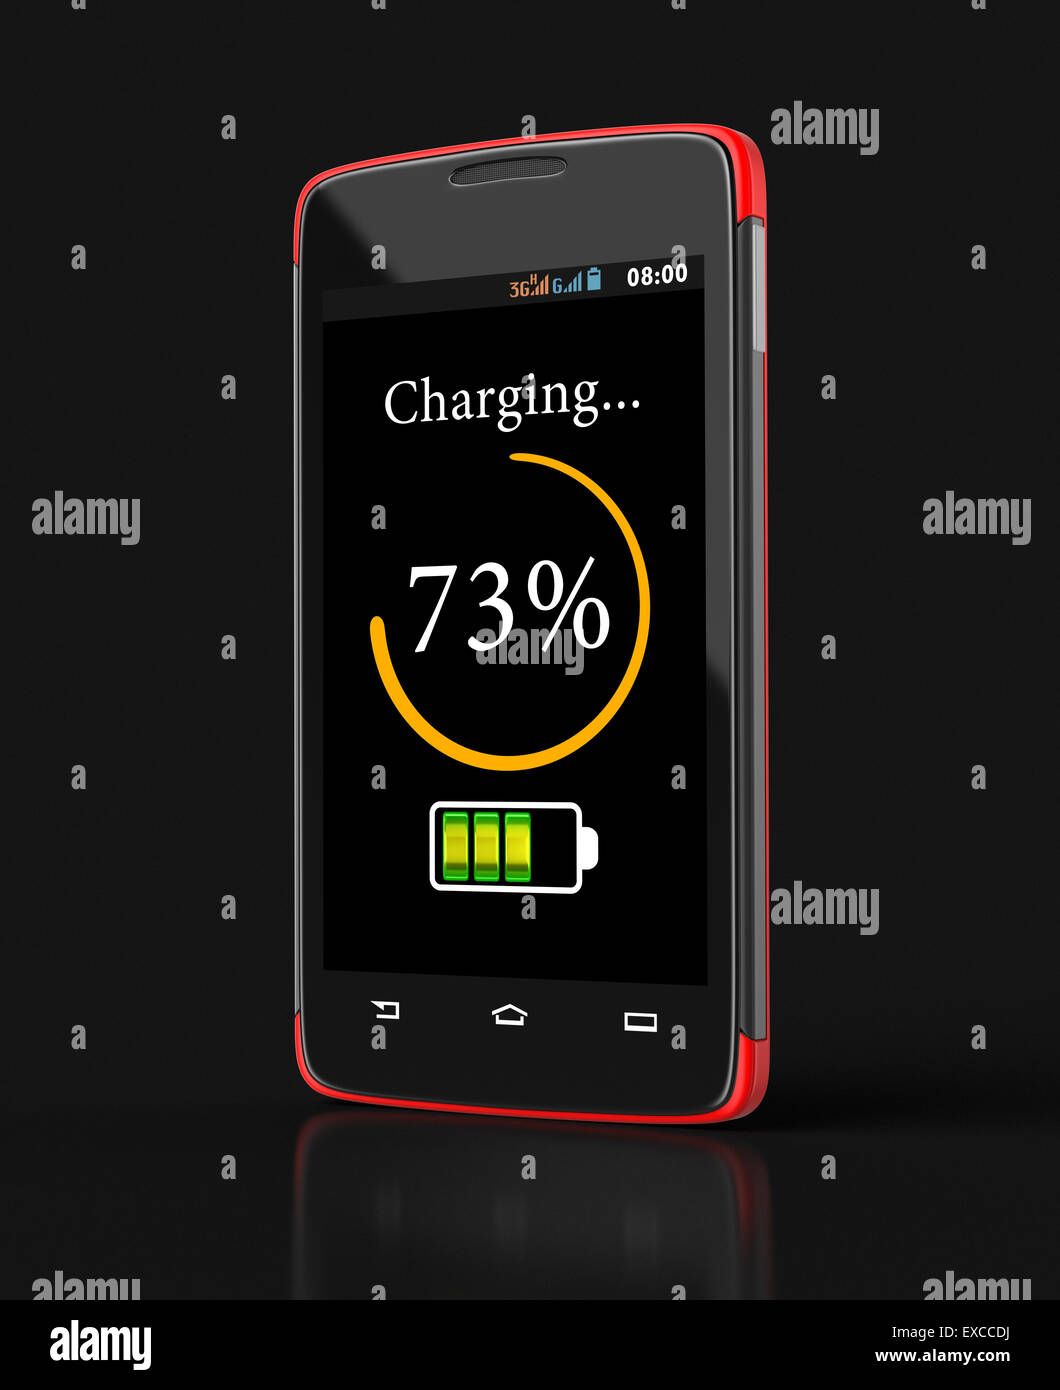 charging battery stock photos charging battery stock images alamy. Black Bedroom Furniture Sets. Home Design Ideas